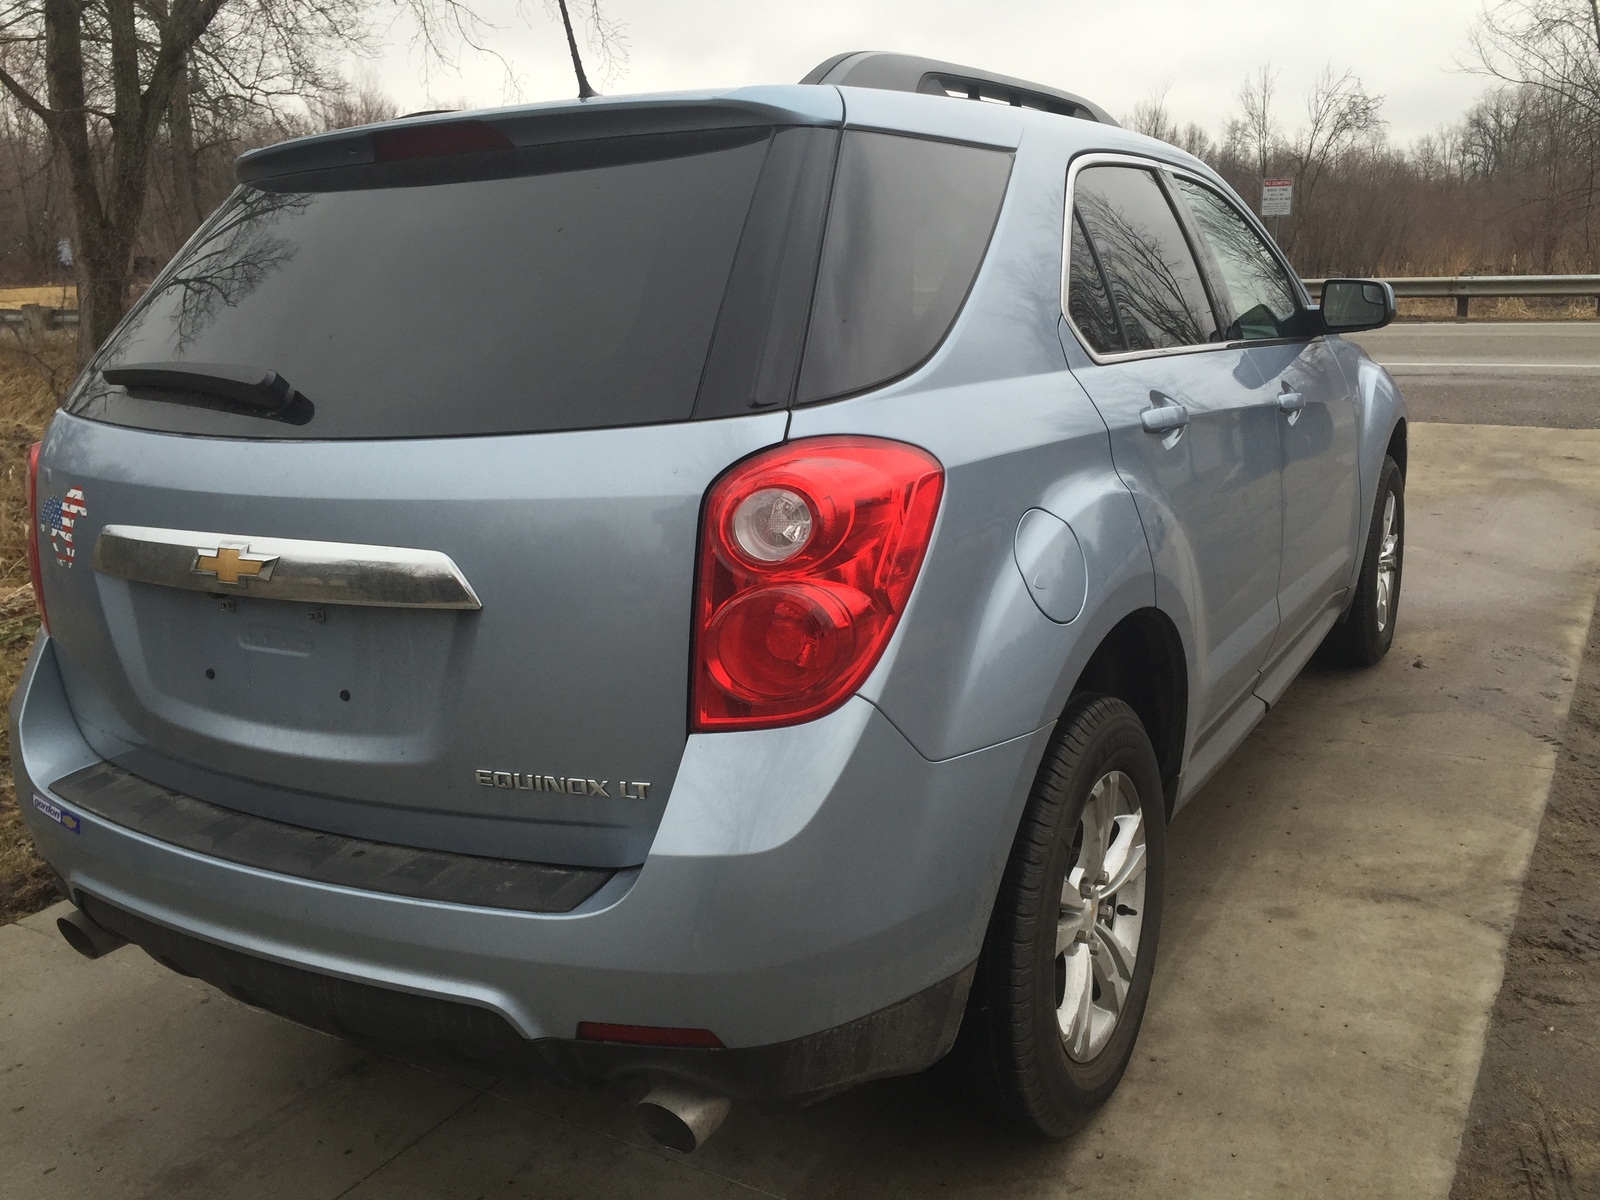 used chevrolet equinox for sale minneapolis mn cargurus. Black Bedroom Furniture Sets. Home Design Ideas